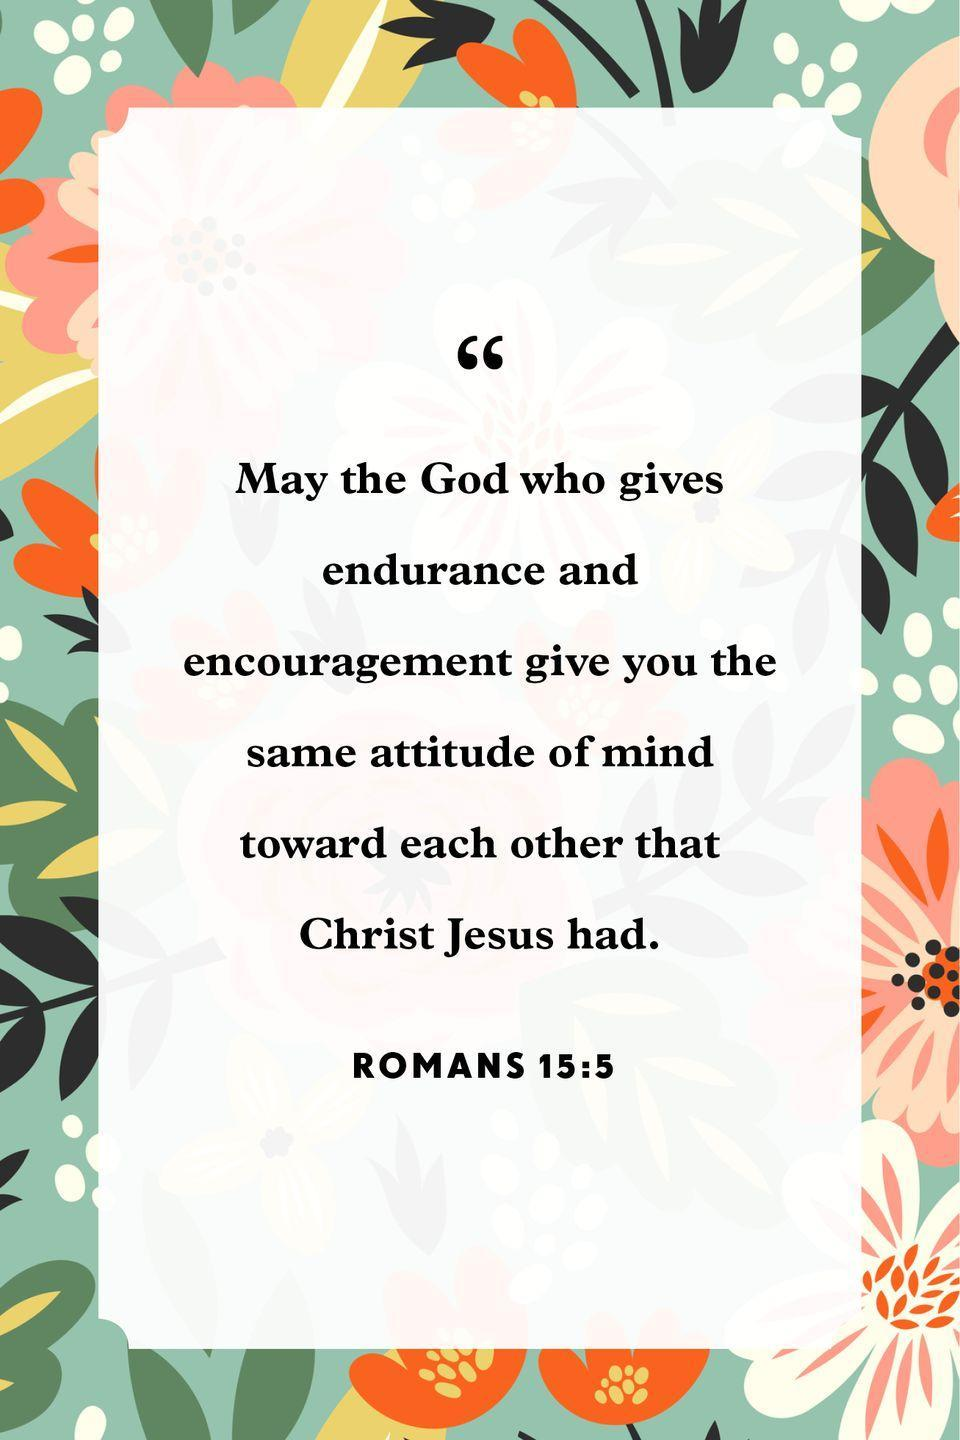 "<p>""May the God who gives endurance and encouragement give you the same attitude of mind toward each other that Christ Jesus had.""</p>"